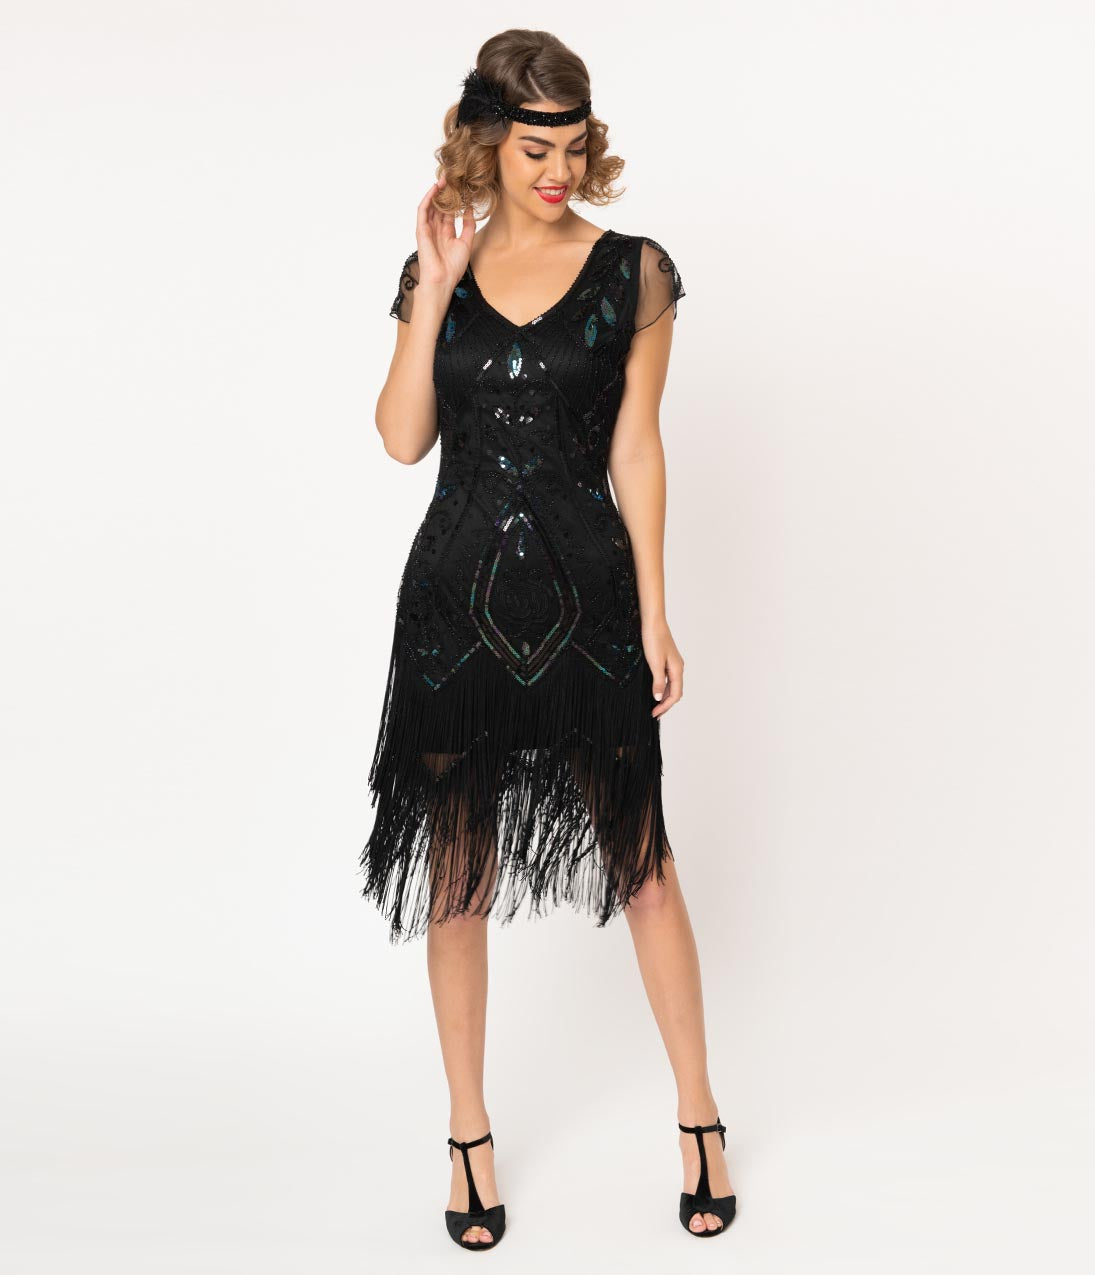 1920s Costumes: Flapper, Great Gatsby, Gangster Girl Unique Vintage 1920S Black Beaded Noele Fringe Flapper Dress $98.00 AT vintagedancer.com